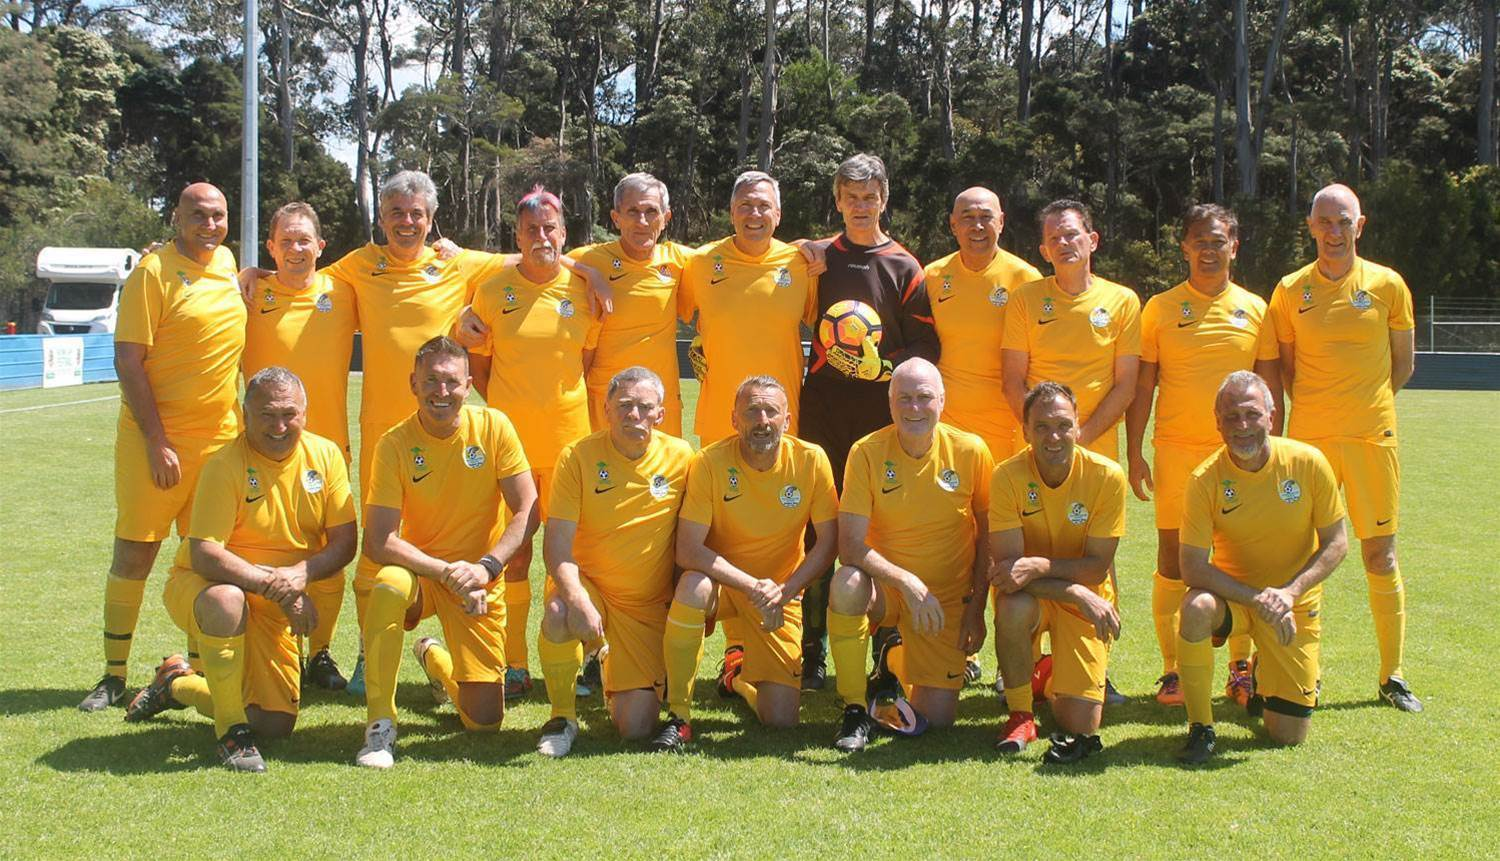 Canberra Old Boys - masters of football